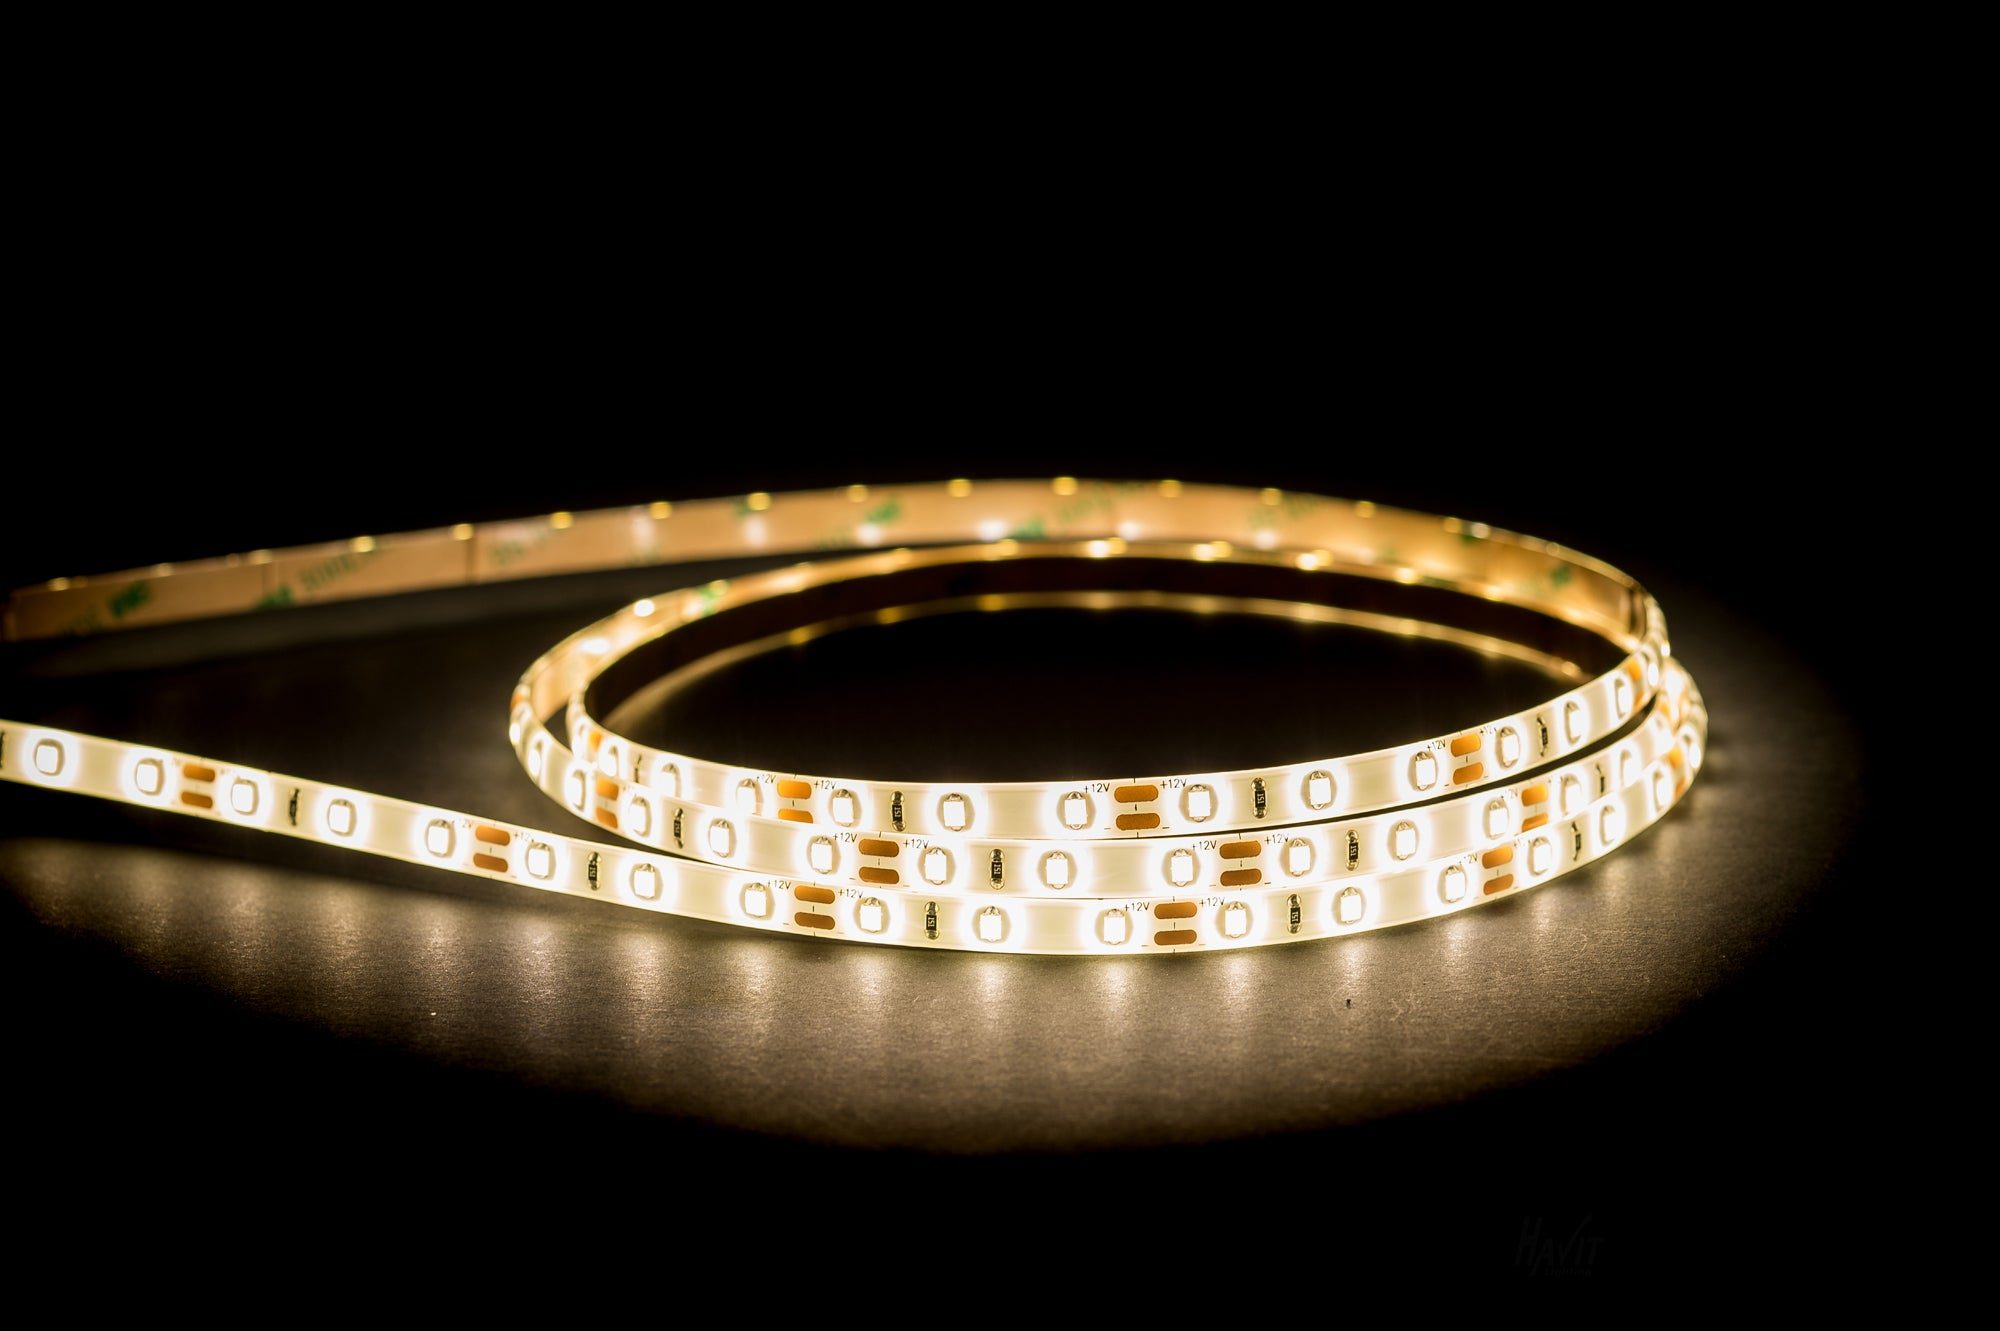 HV9723-IP54-60-4K - 4.8w 12v DC IP54 LED Strip 4000k